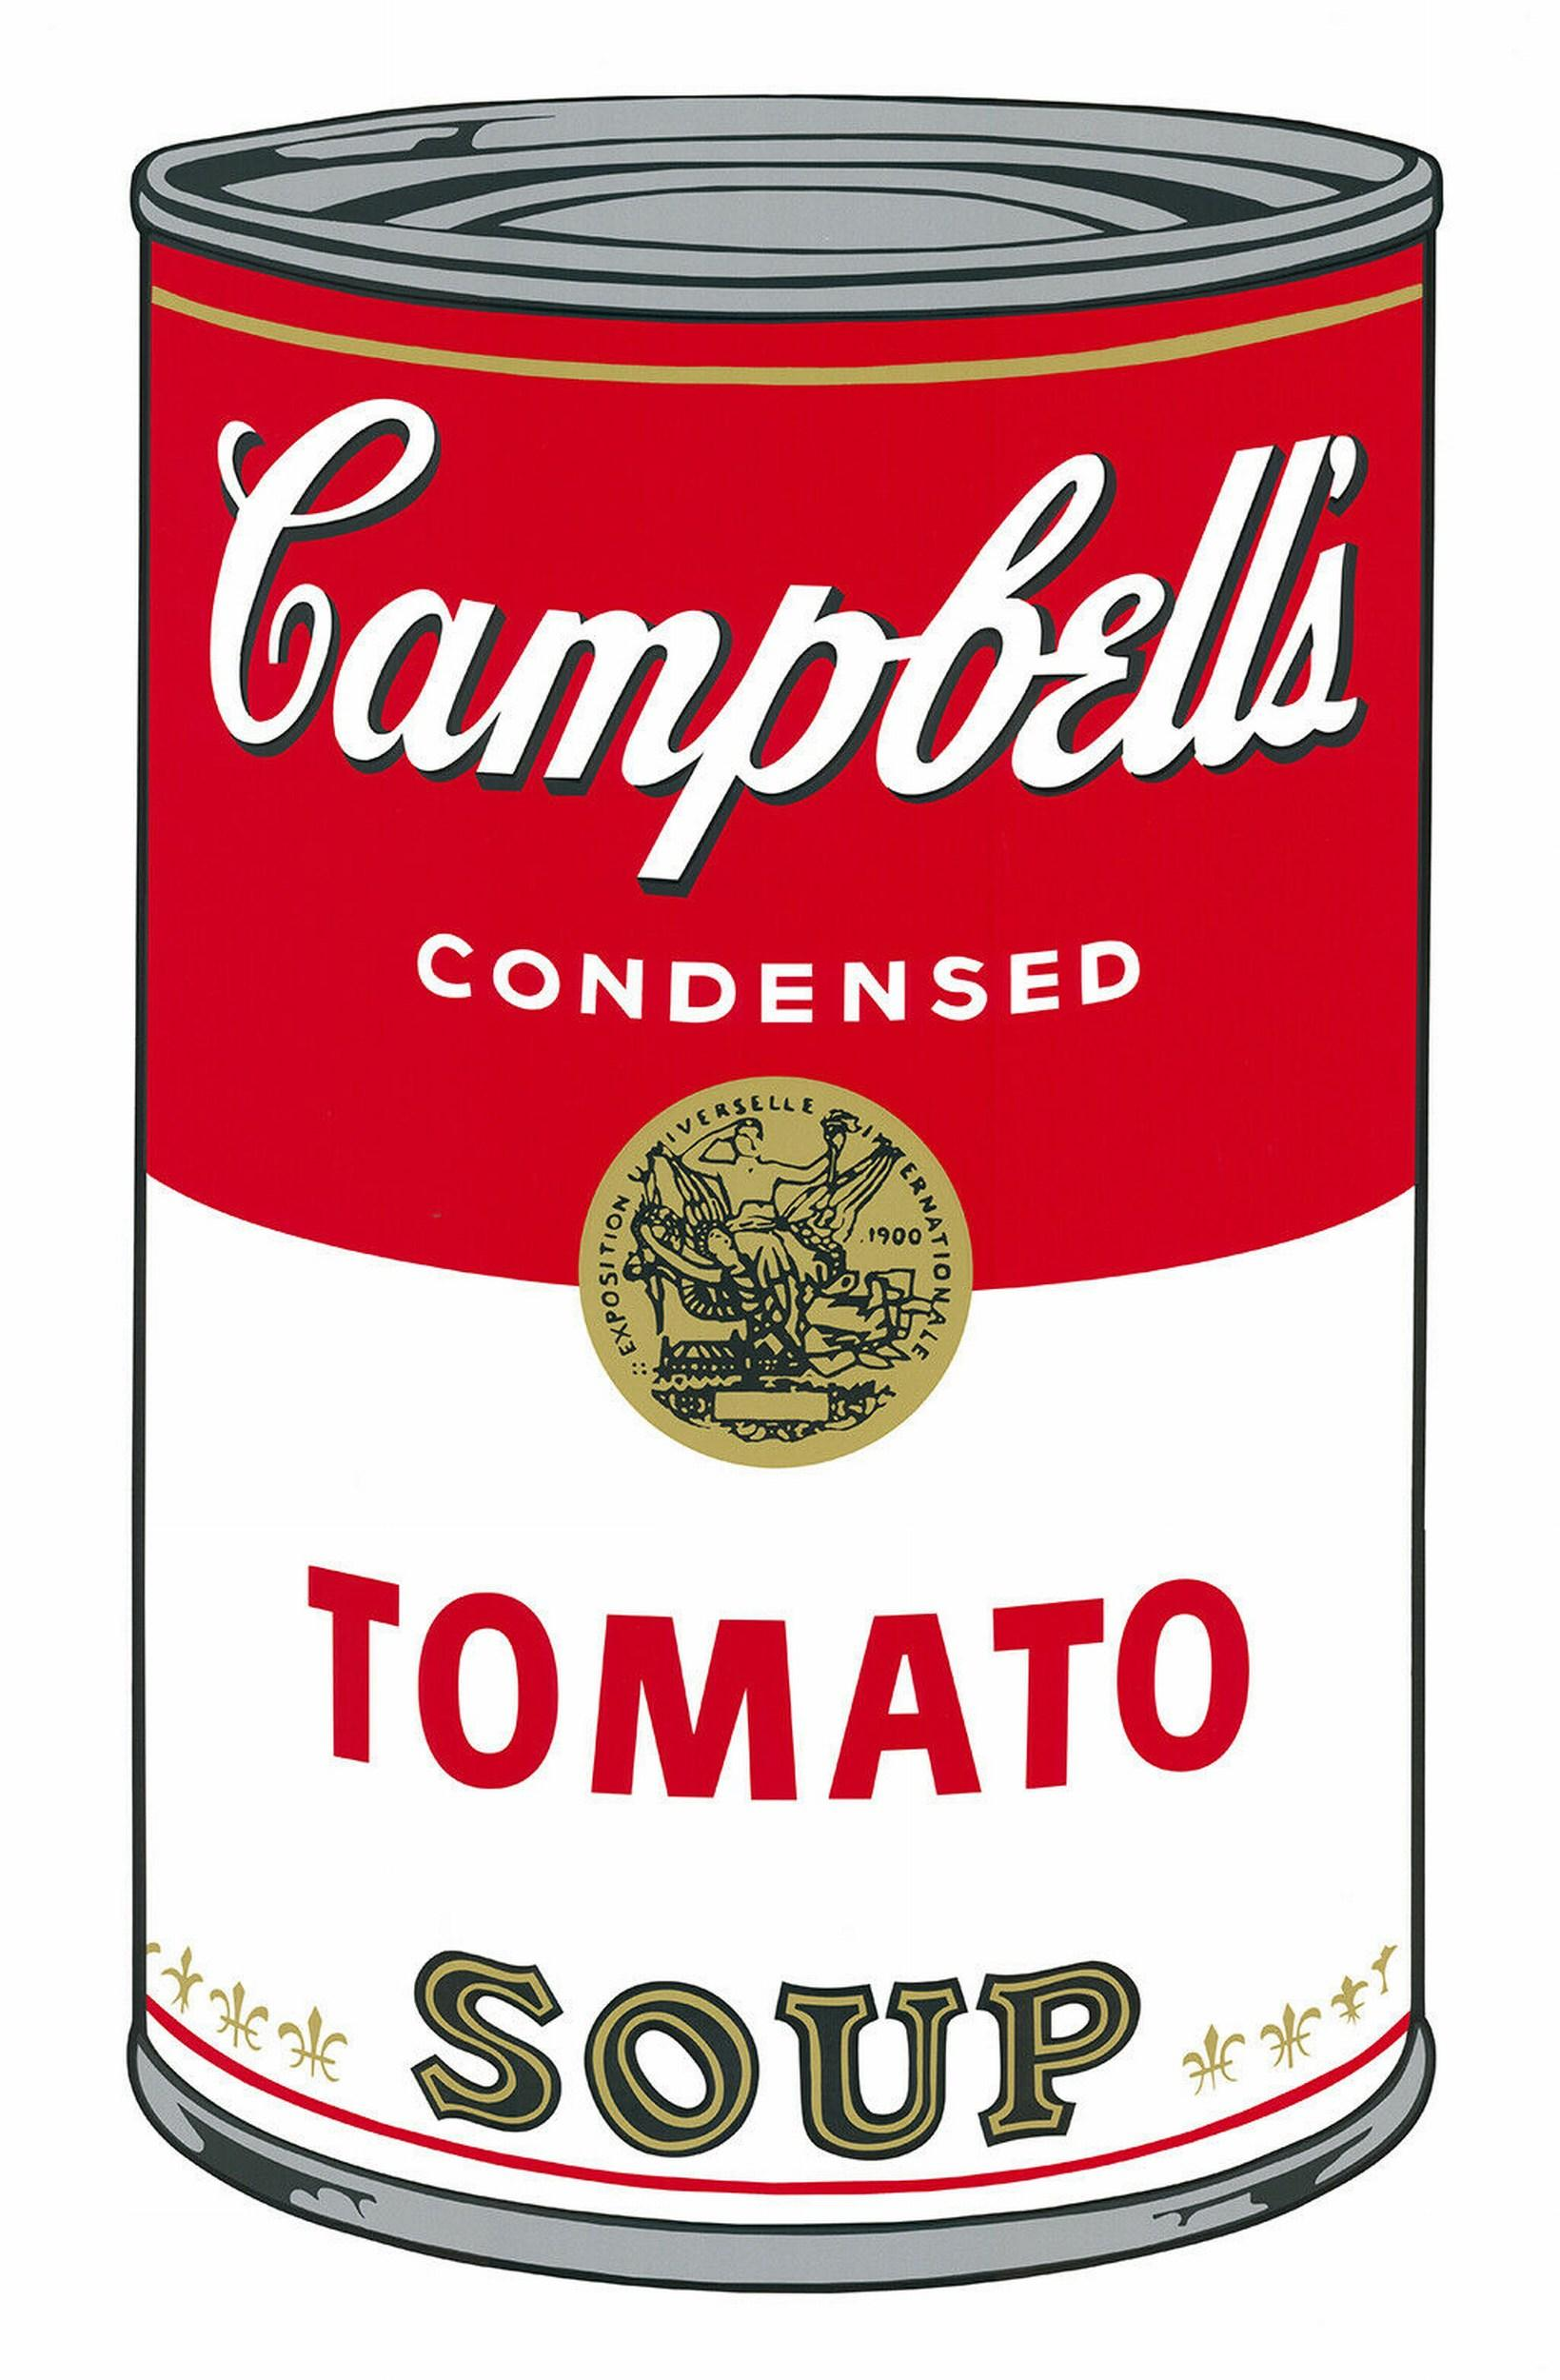 Campbell´s Tomato Soup (Andy Warhol, Pop Art) $45 SHIPPING U.S. only (not $499!)